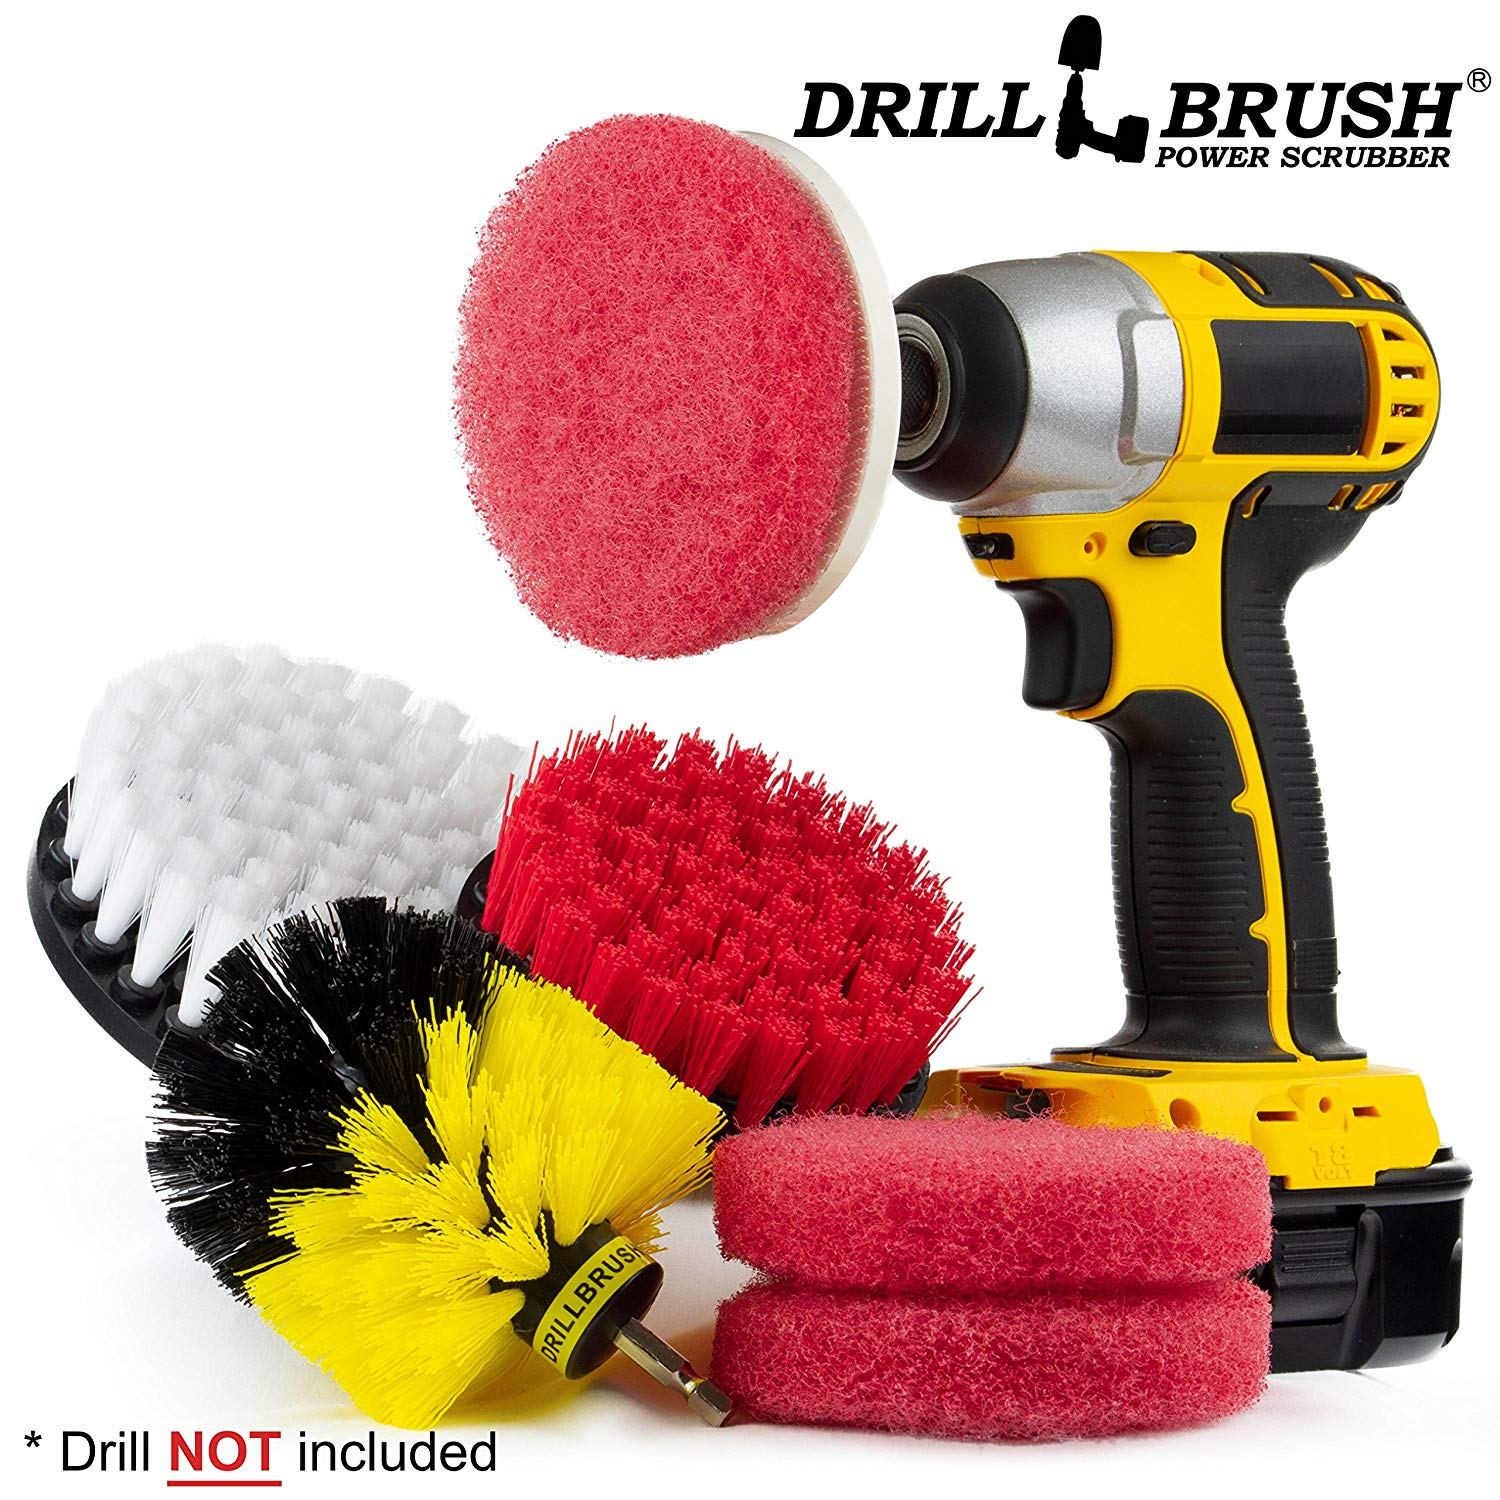 Drill Brush Power Scrubber Attachments - Bathroom Kitchen Cleaning Supplies - Brushes For Drill - Scouring Pads - Tile, Grout, Baseboard, Tub and Shower Hard Water Cleaner - Spin Floor Scrubber